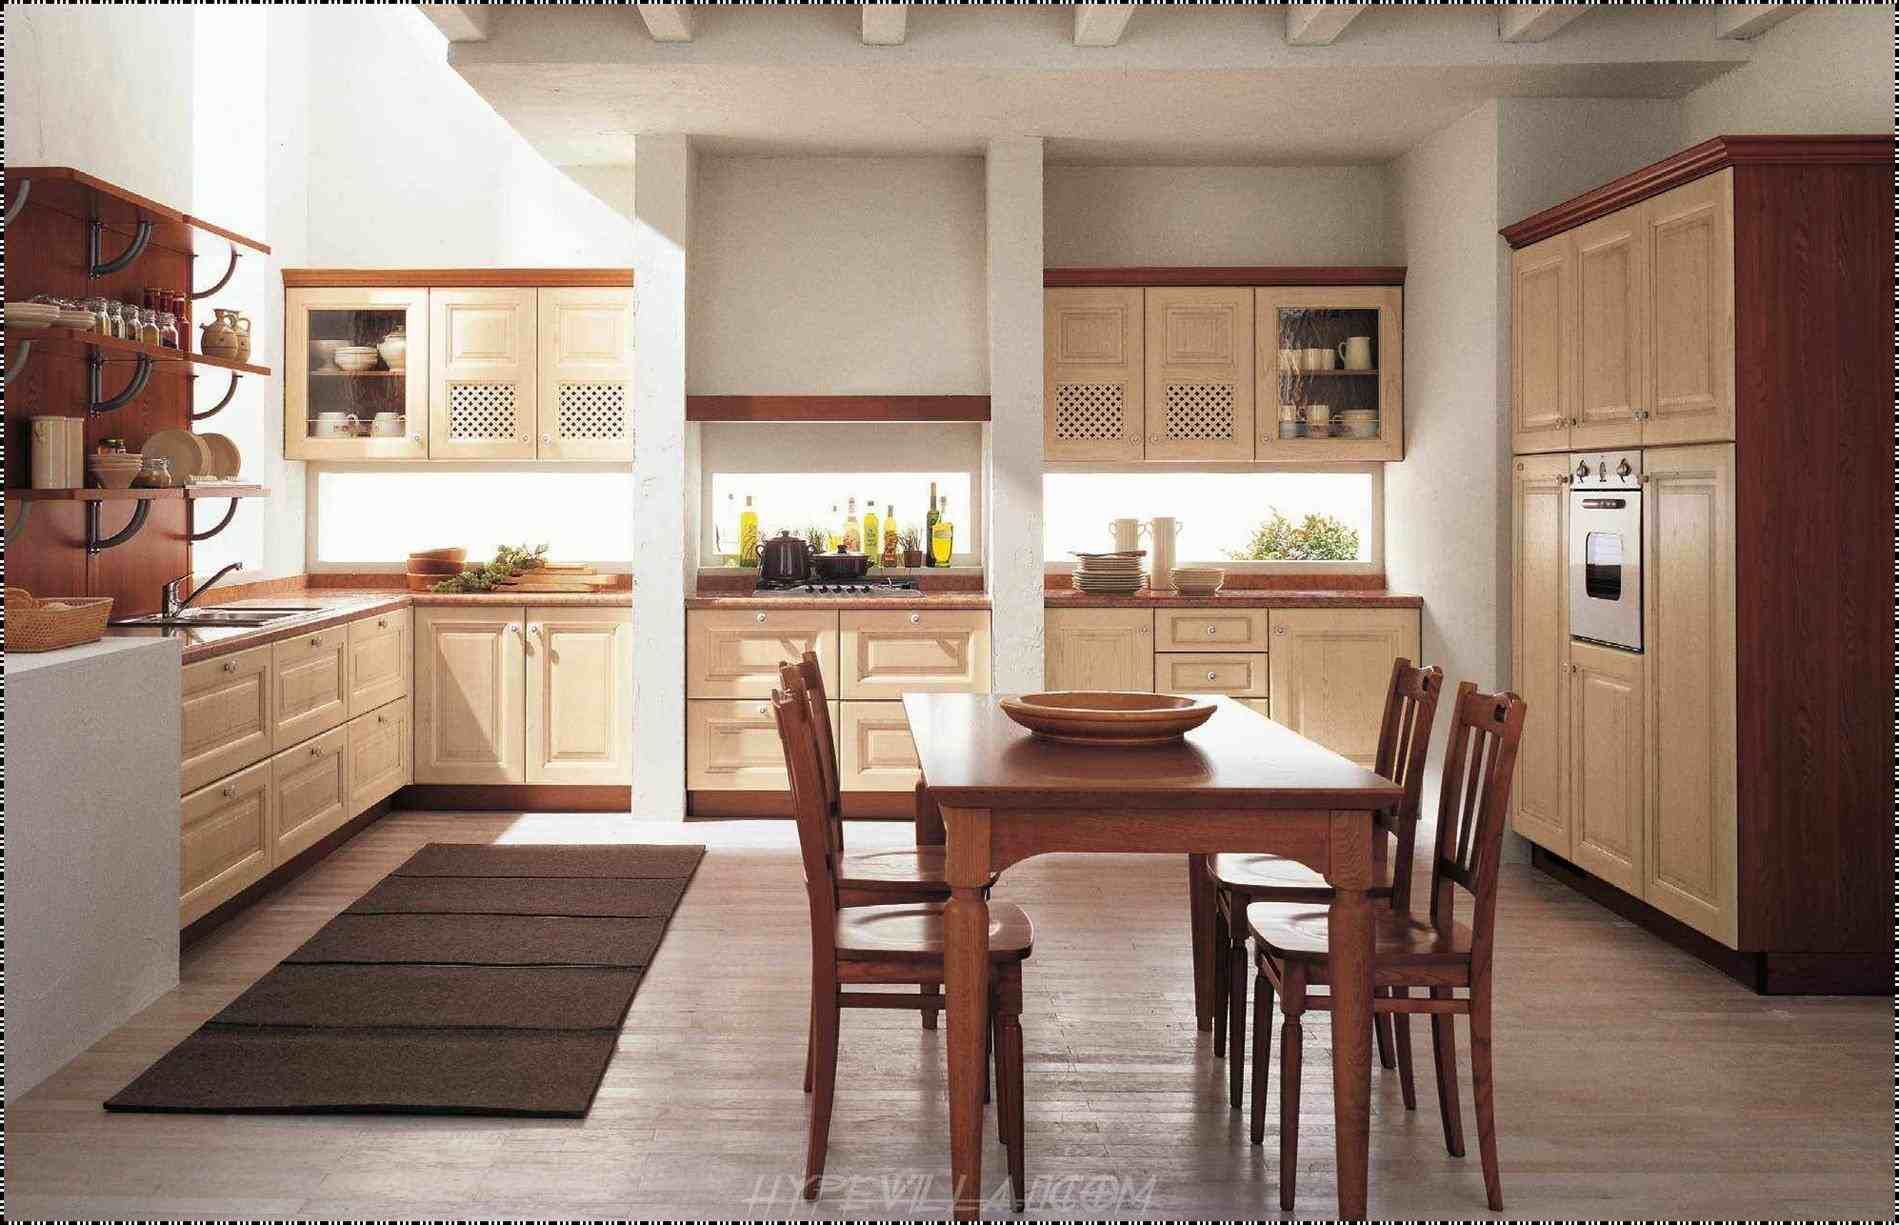 New post home interior design kitchen kerala visit bobayule trending decors also house rh co pinterest